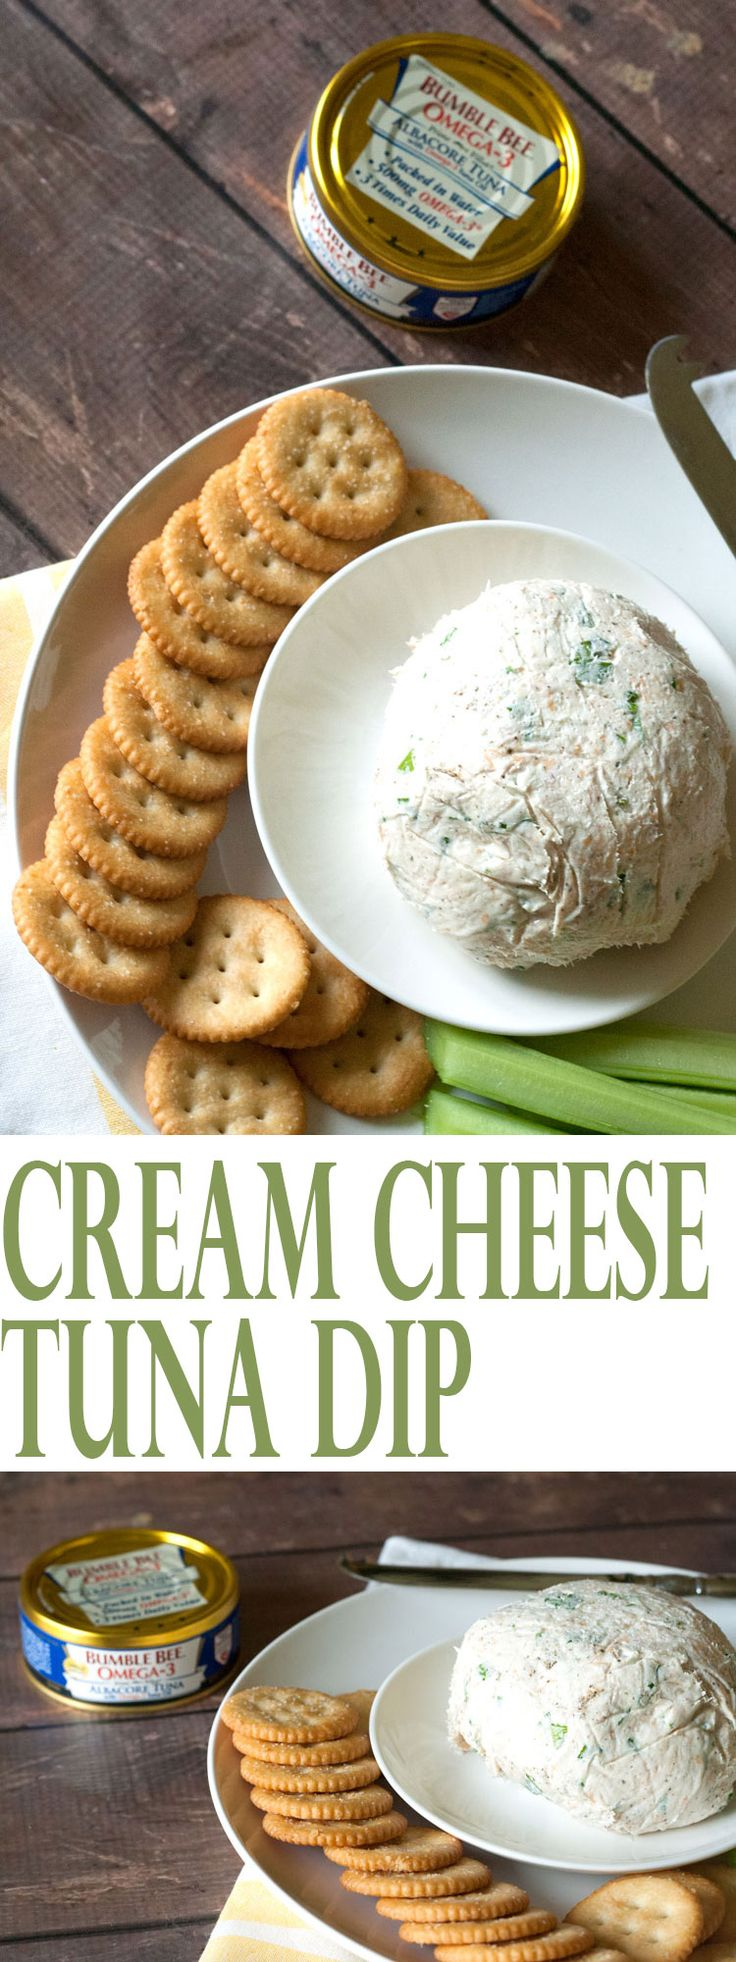 Cream Cheese Tuna Dip   AllSheCooks.com   This dip is perfect served with crackers, celery, or spread on a tortilla, rolled up and sliced into pinwheels. Yum!  #TunaStrong #CG @bumblebeefoods